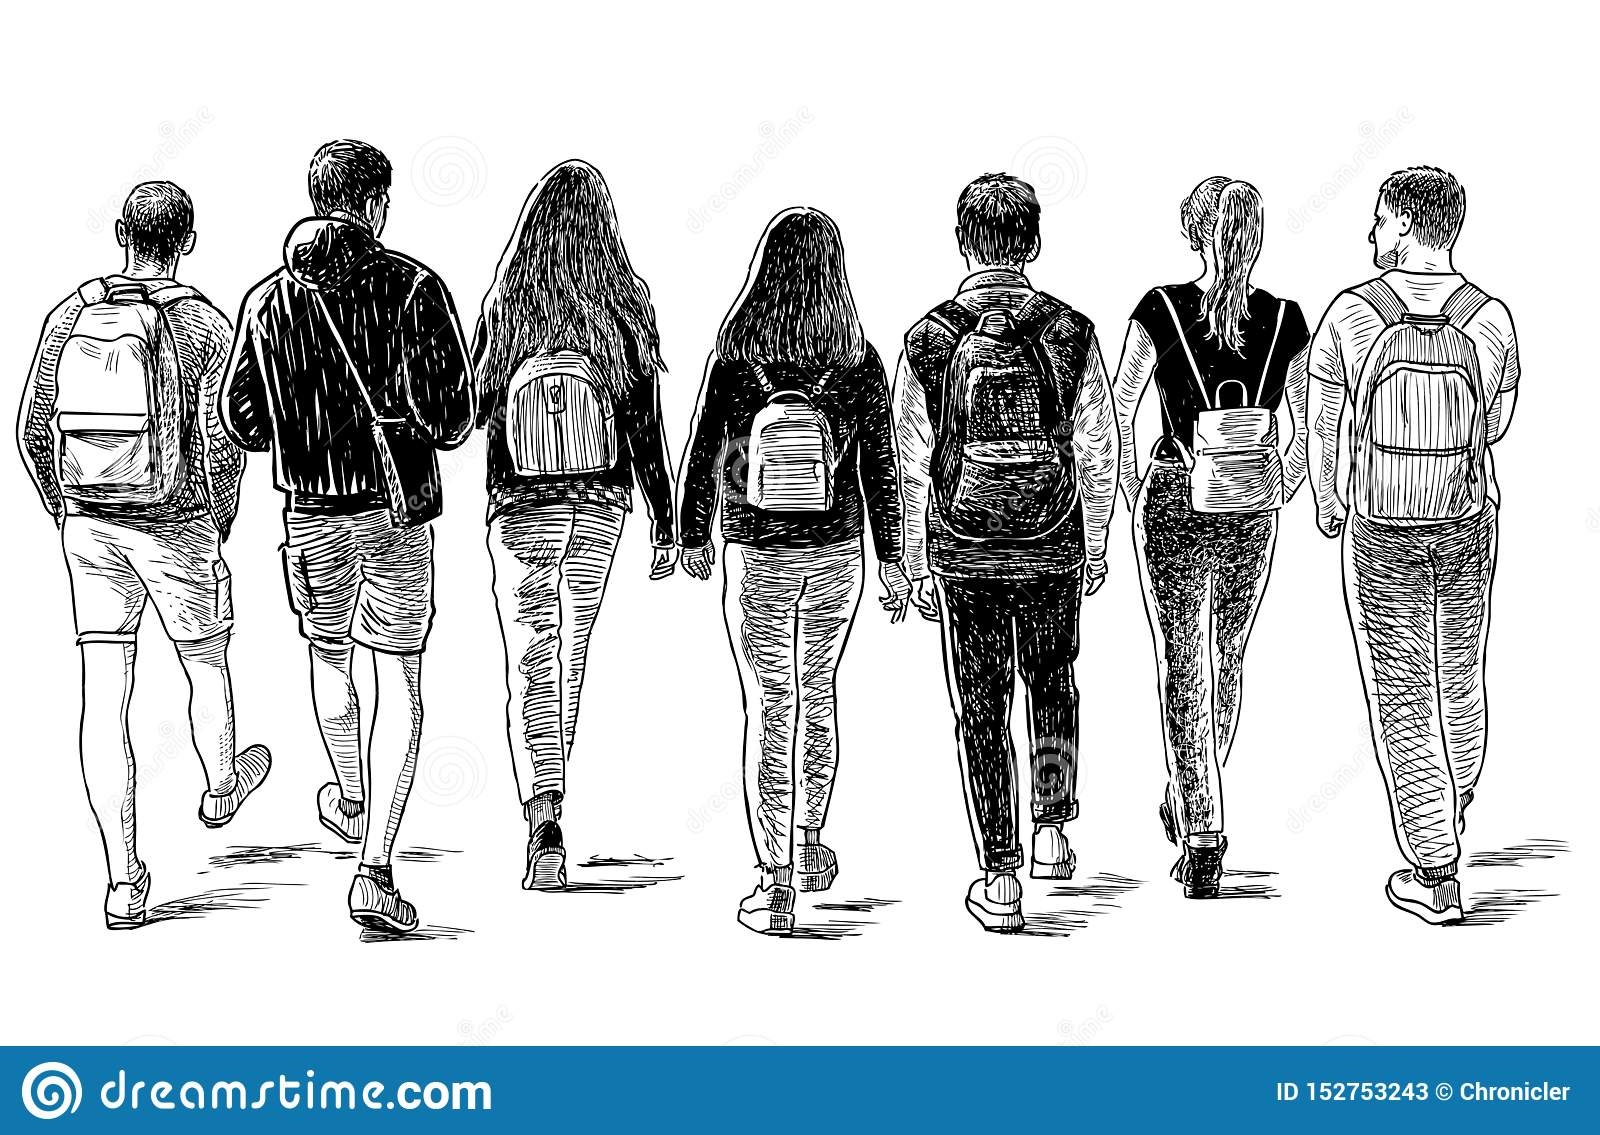 Sketch of a group of students friends walking down the street